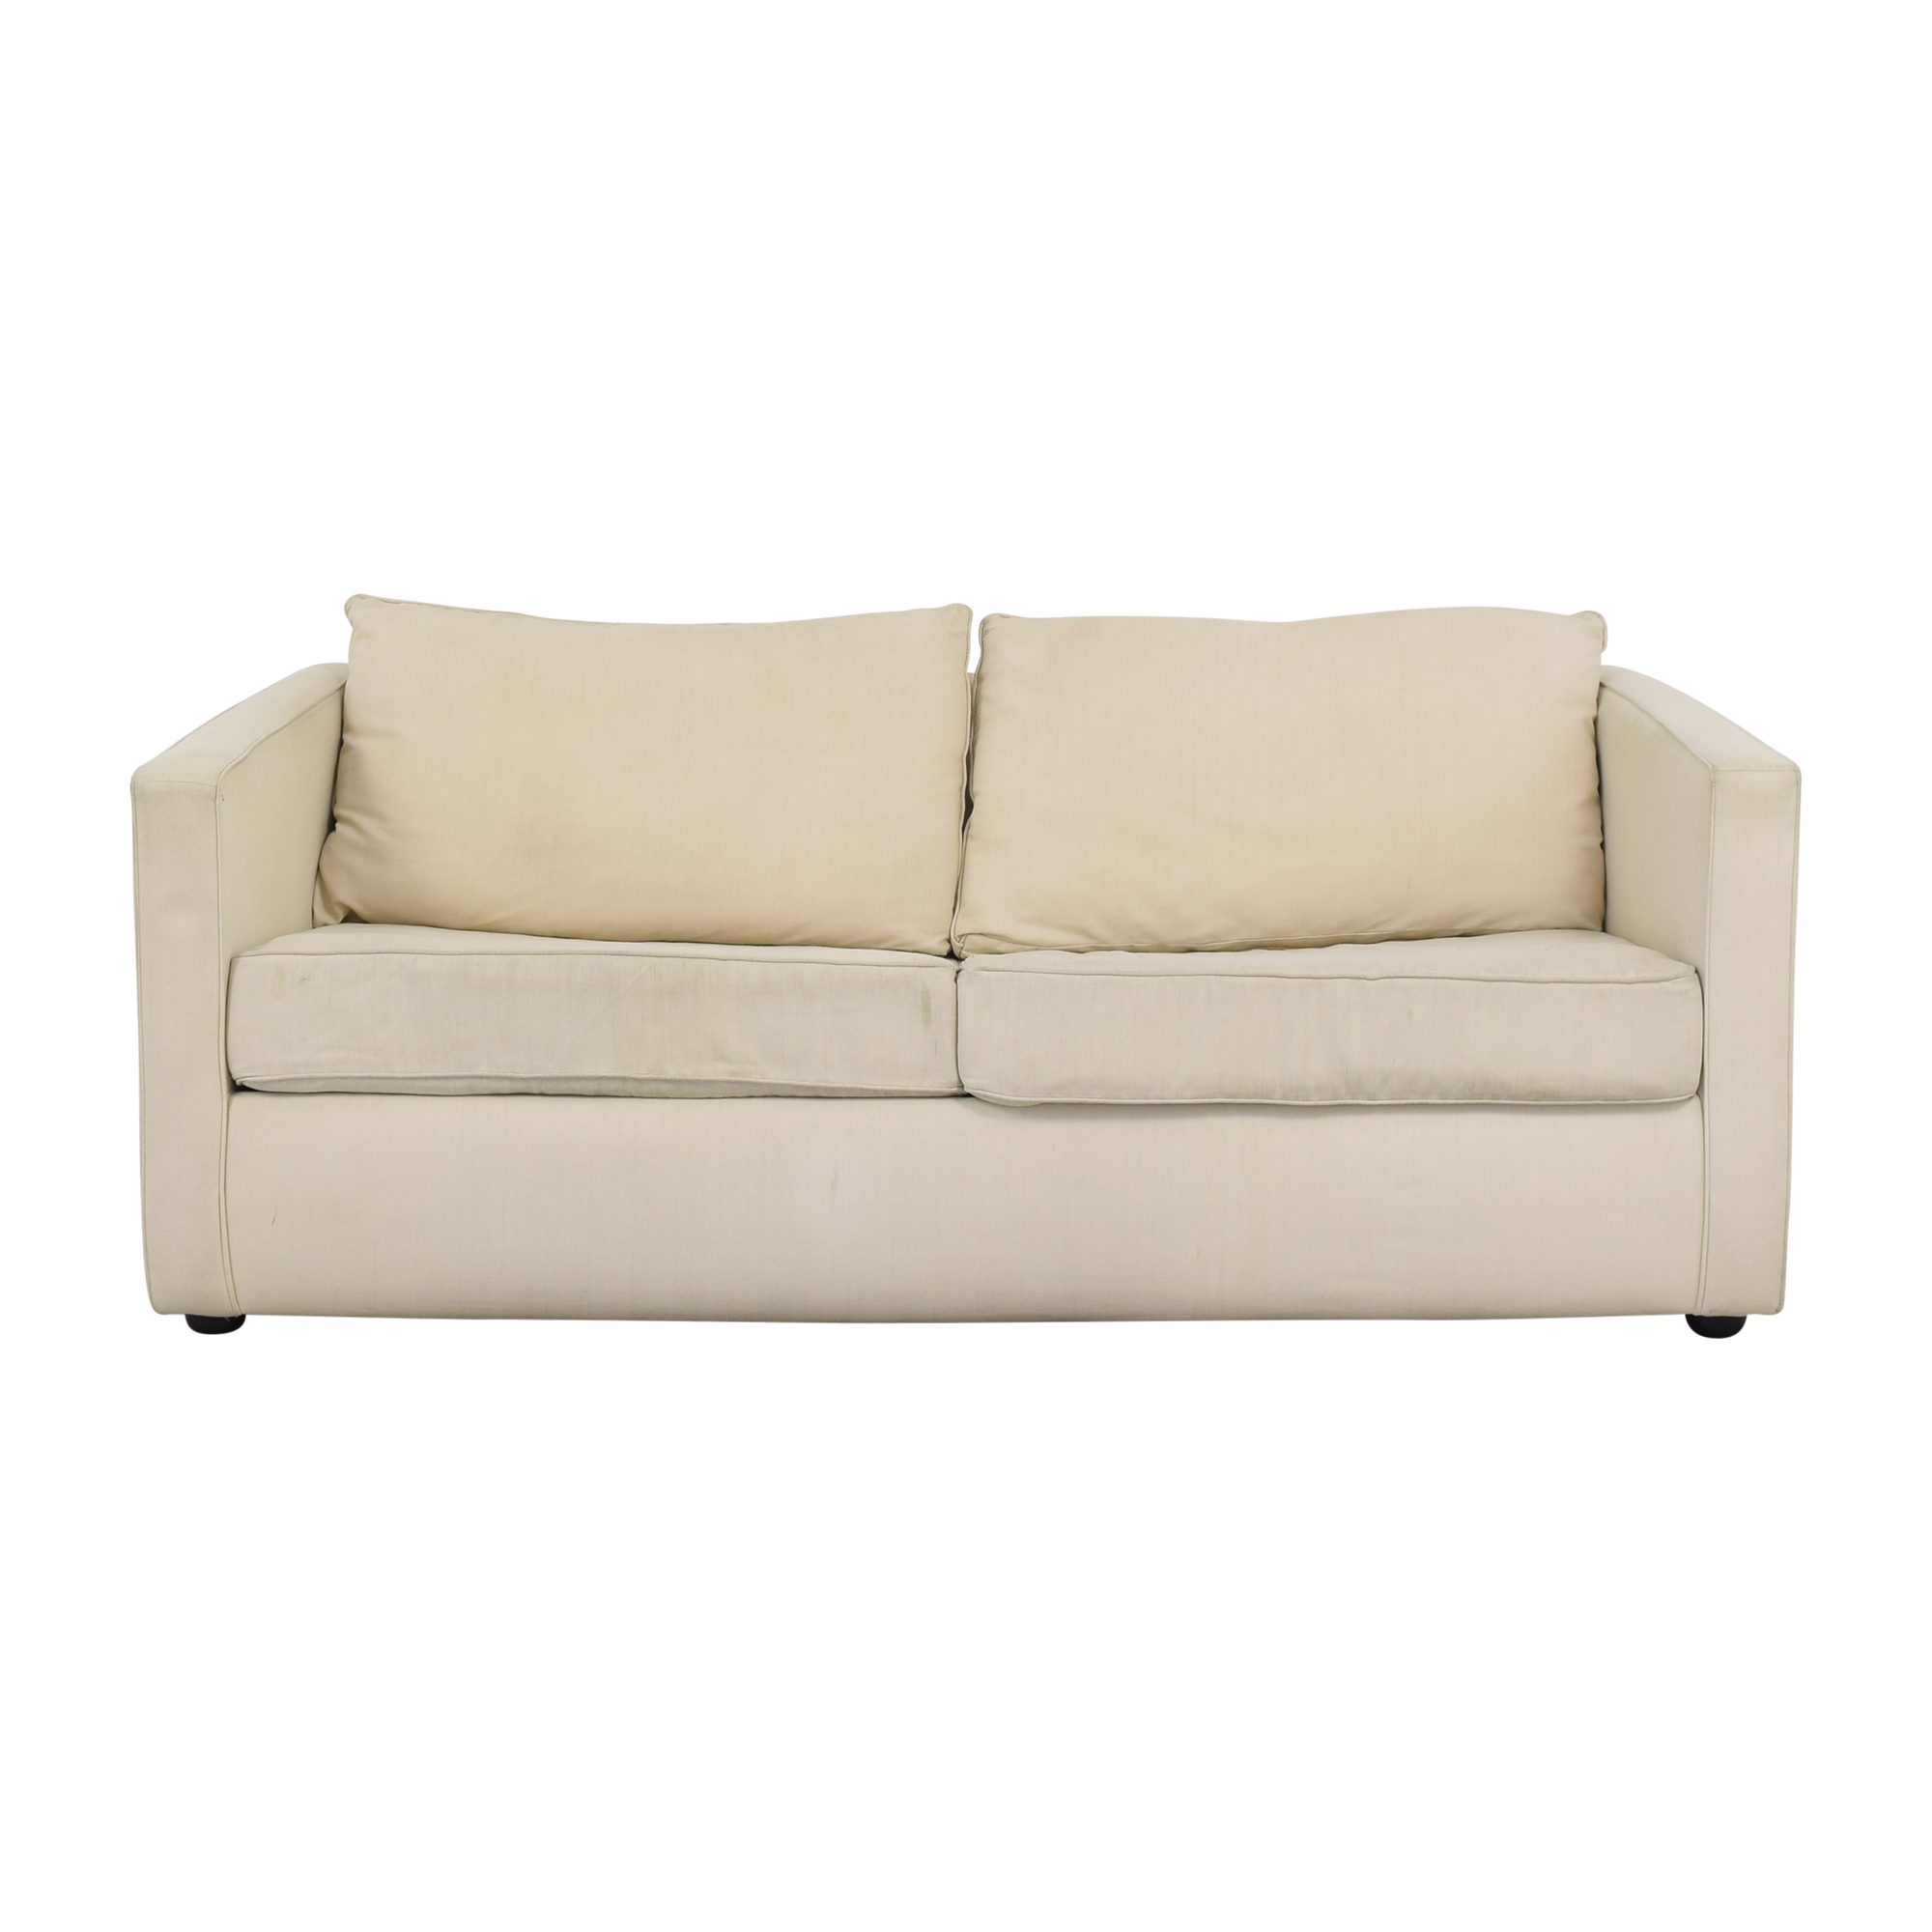 buy KFI Single Cushion Sofa Bed  Sofas